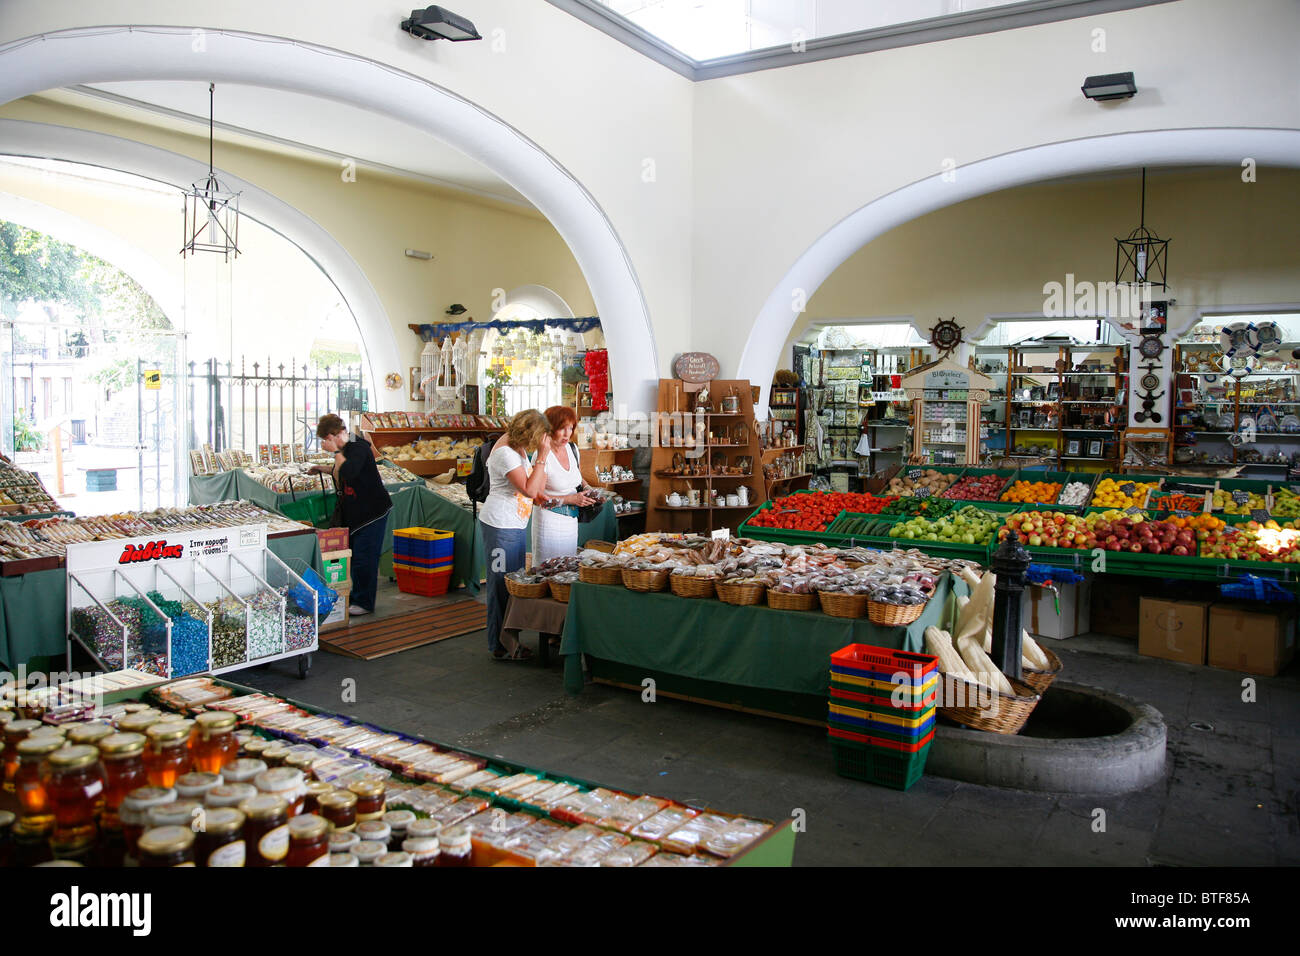 Fruits vegetables and spices at the central market in Kos Town, Kos, Greece. Stock Photo